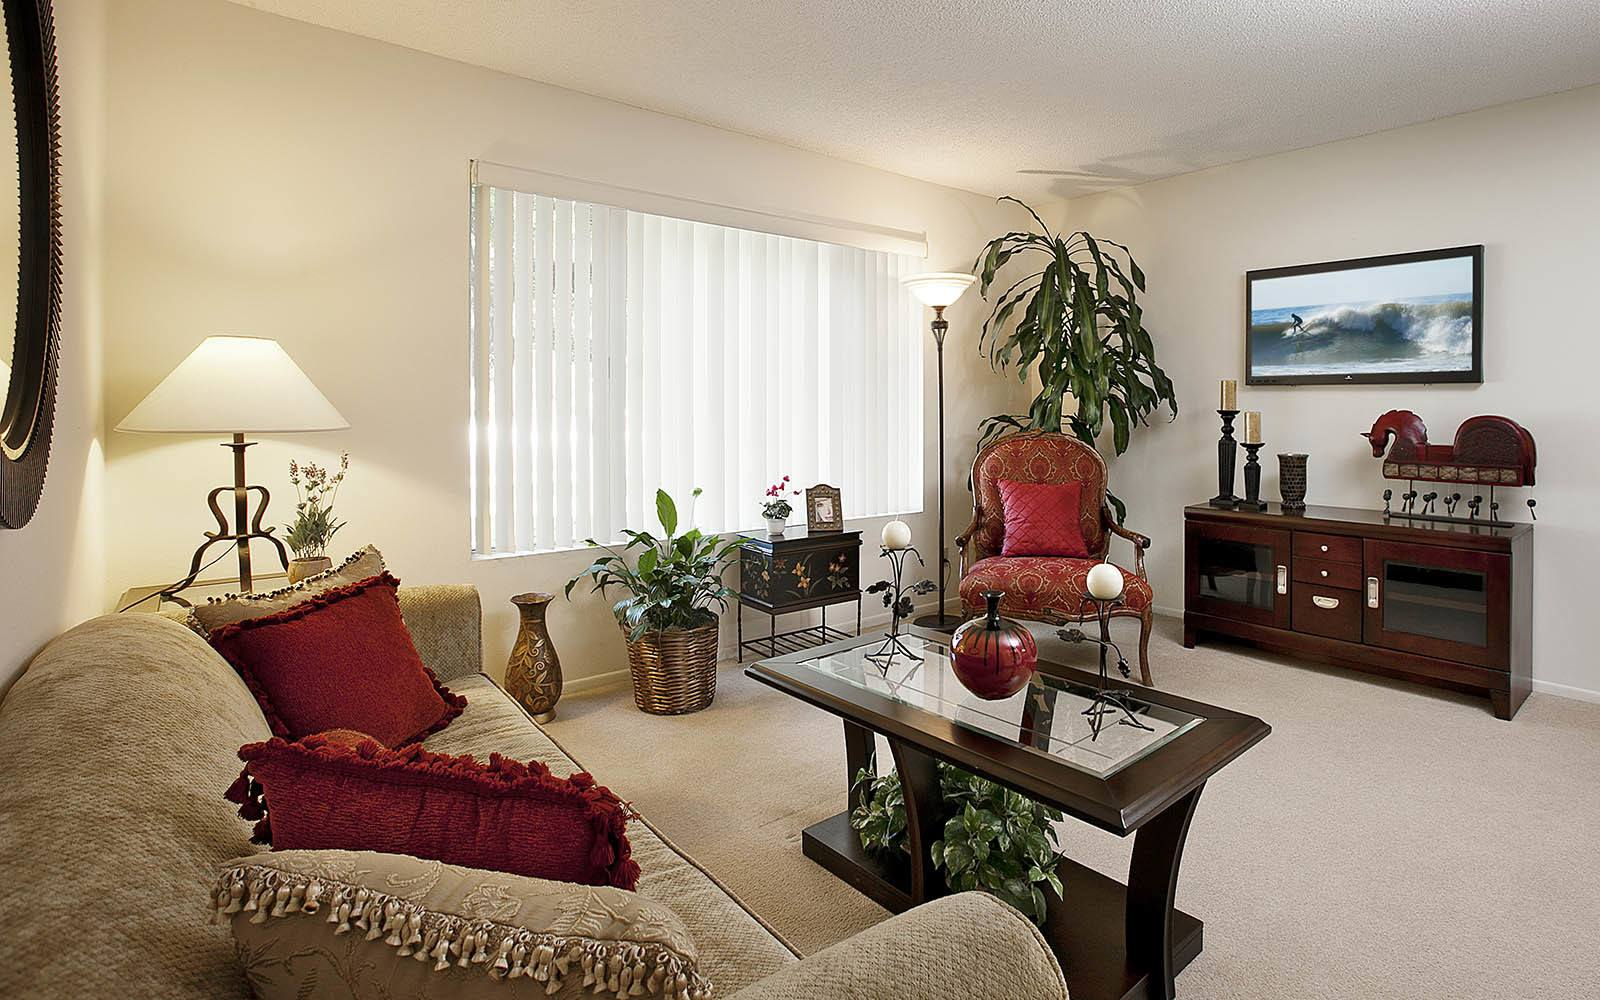 Living room at Patterson Place Apartments in Santa Barbara